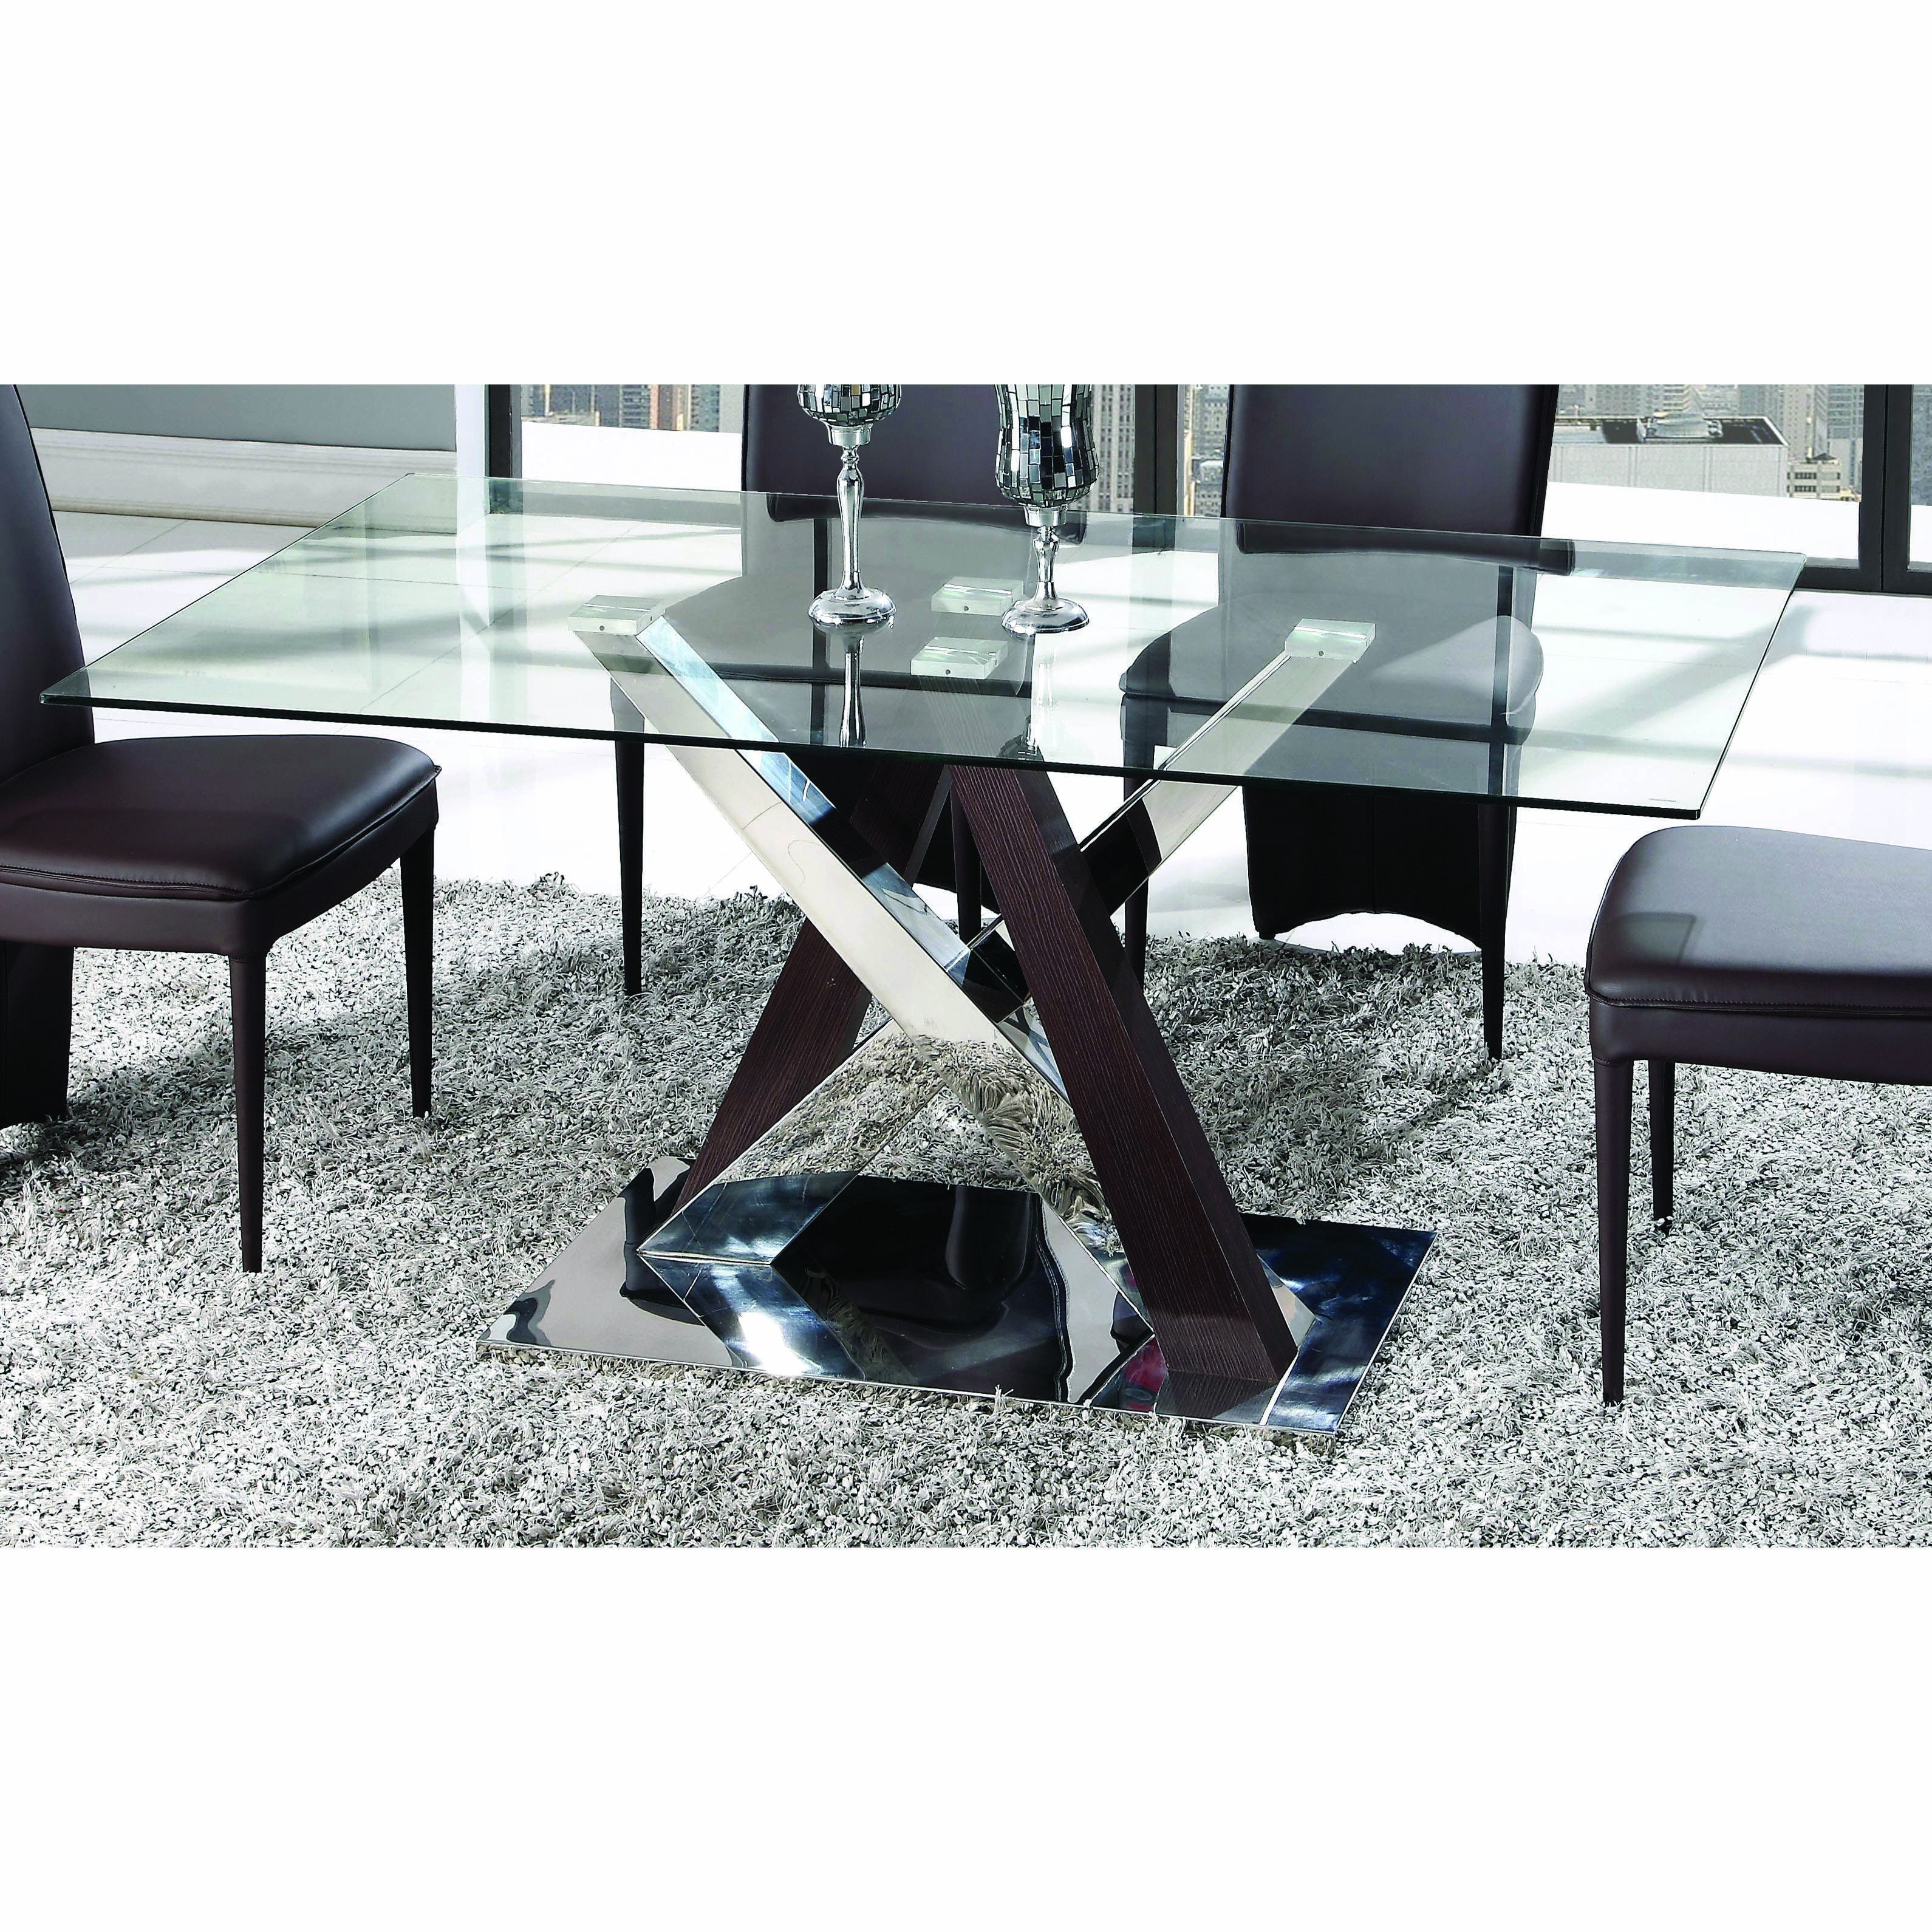 Mxhr Was Here Glass Dining Table Cheap Dining Room Sets Dining